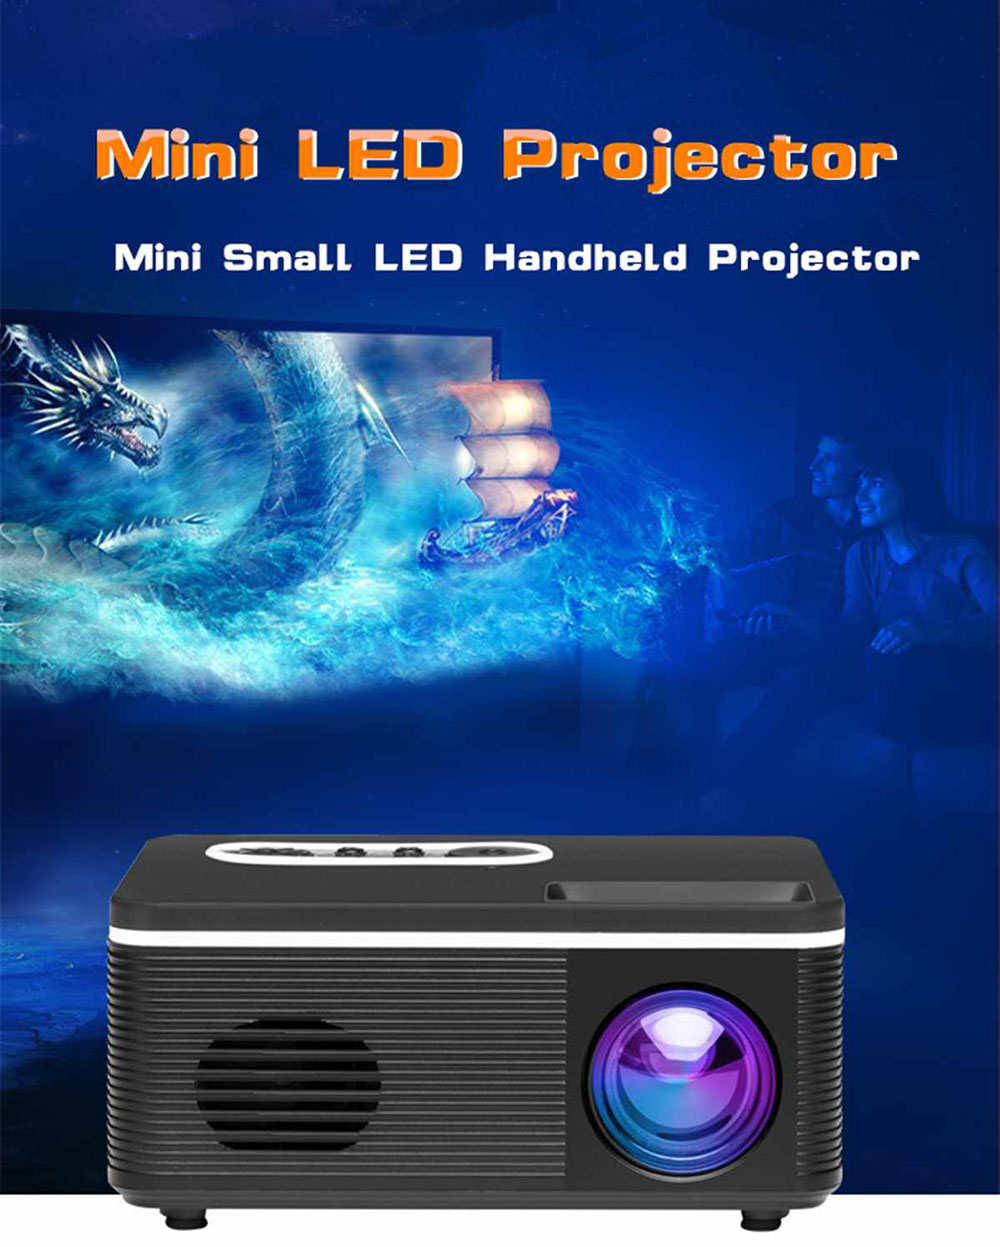 Bilikay S361 Portable Mini LED Projector HDMI supports HD 1080p video player home media player built-in speaker - White EU Plug